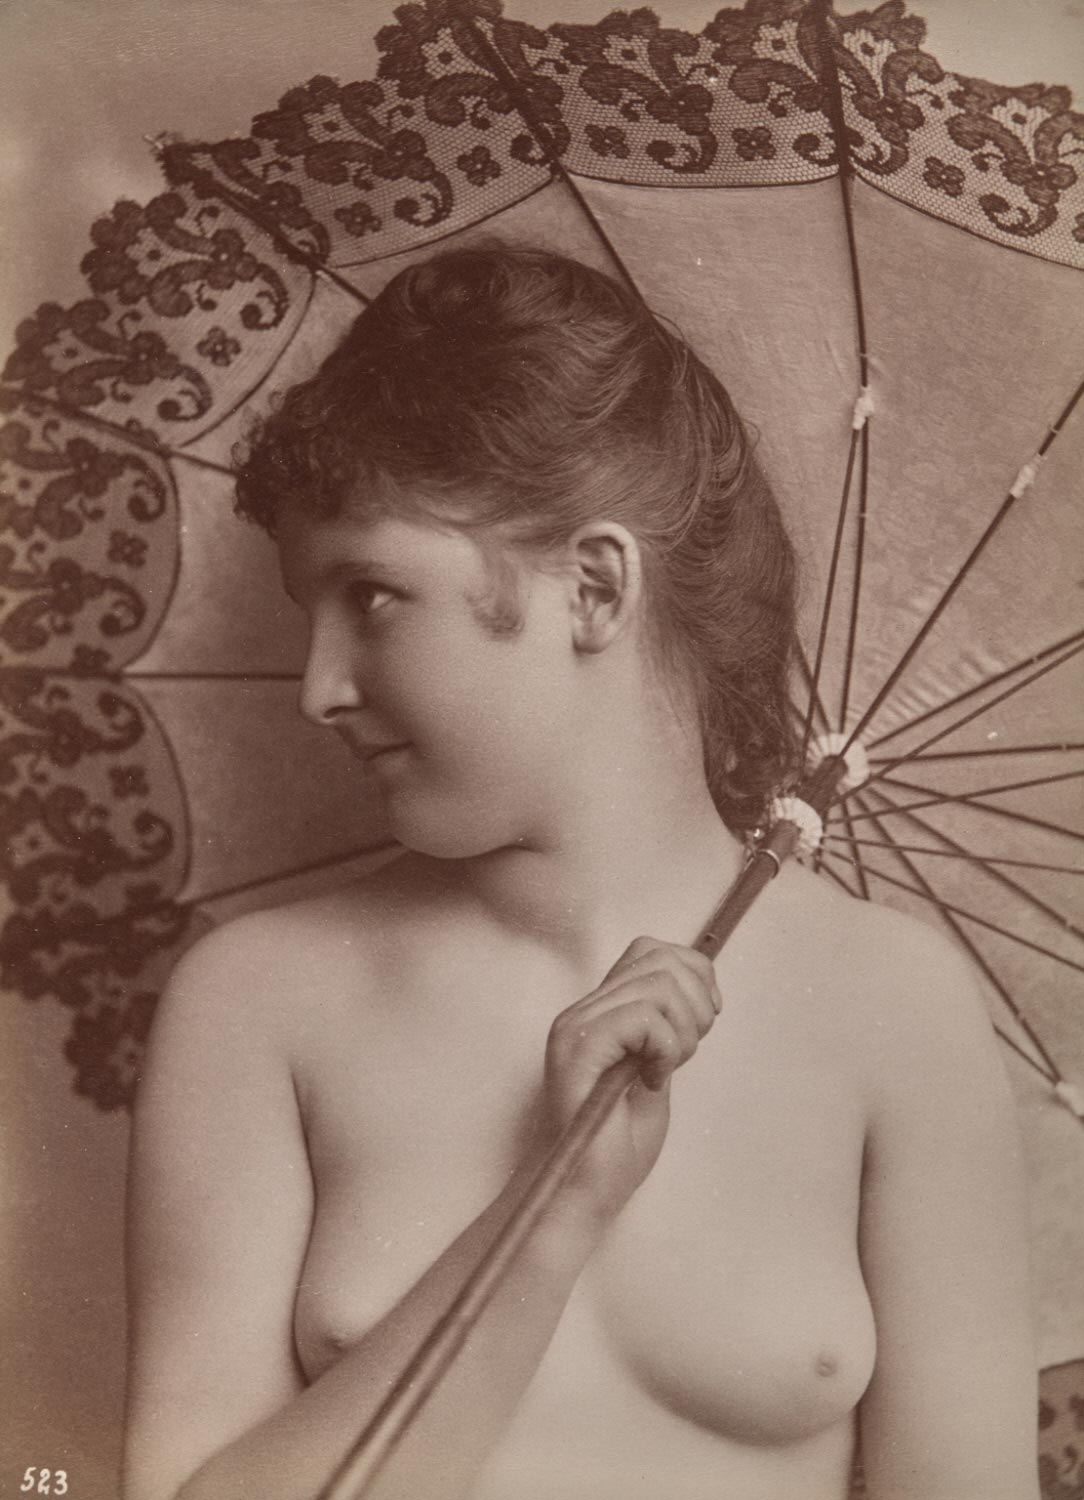 Nude Woman Holding a Parasol